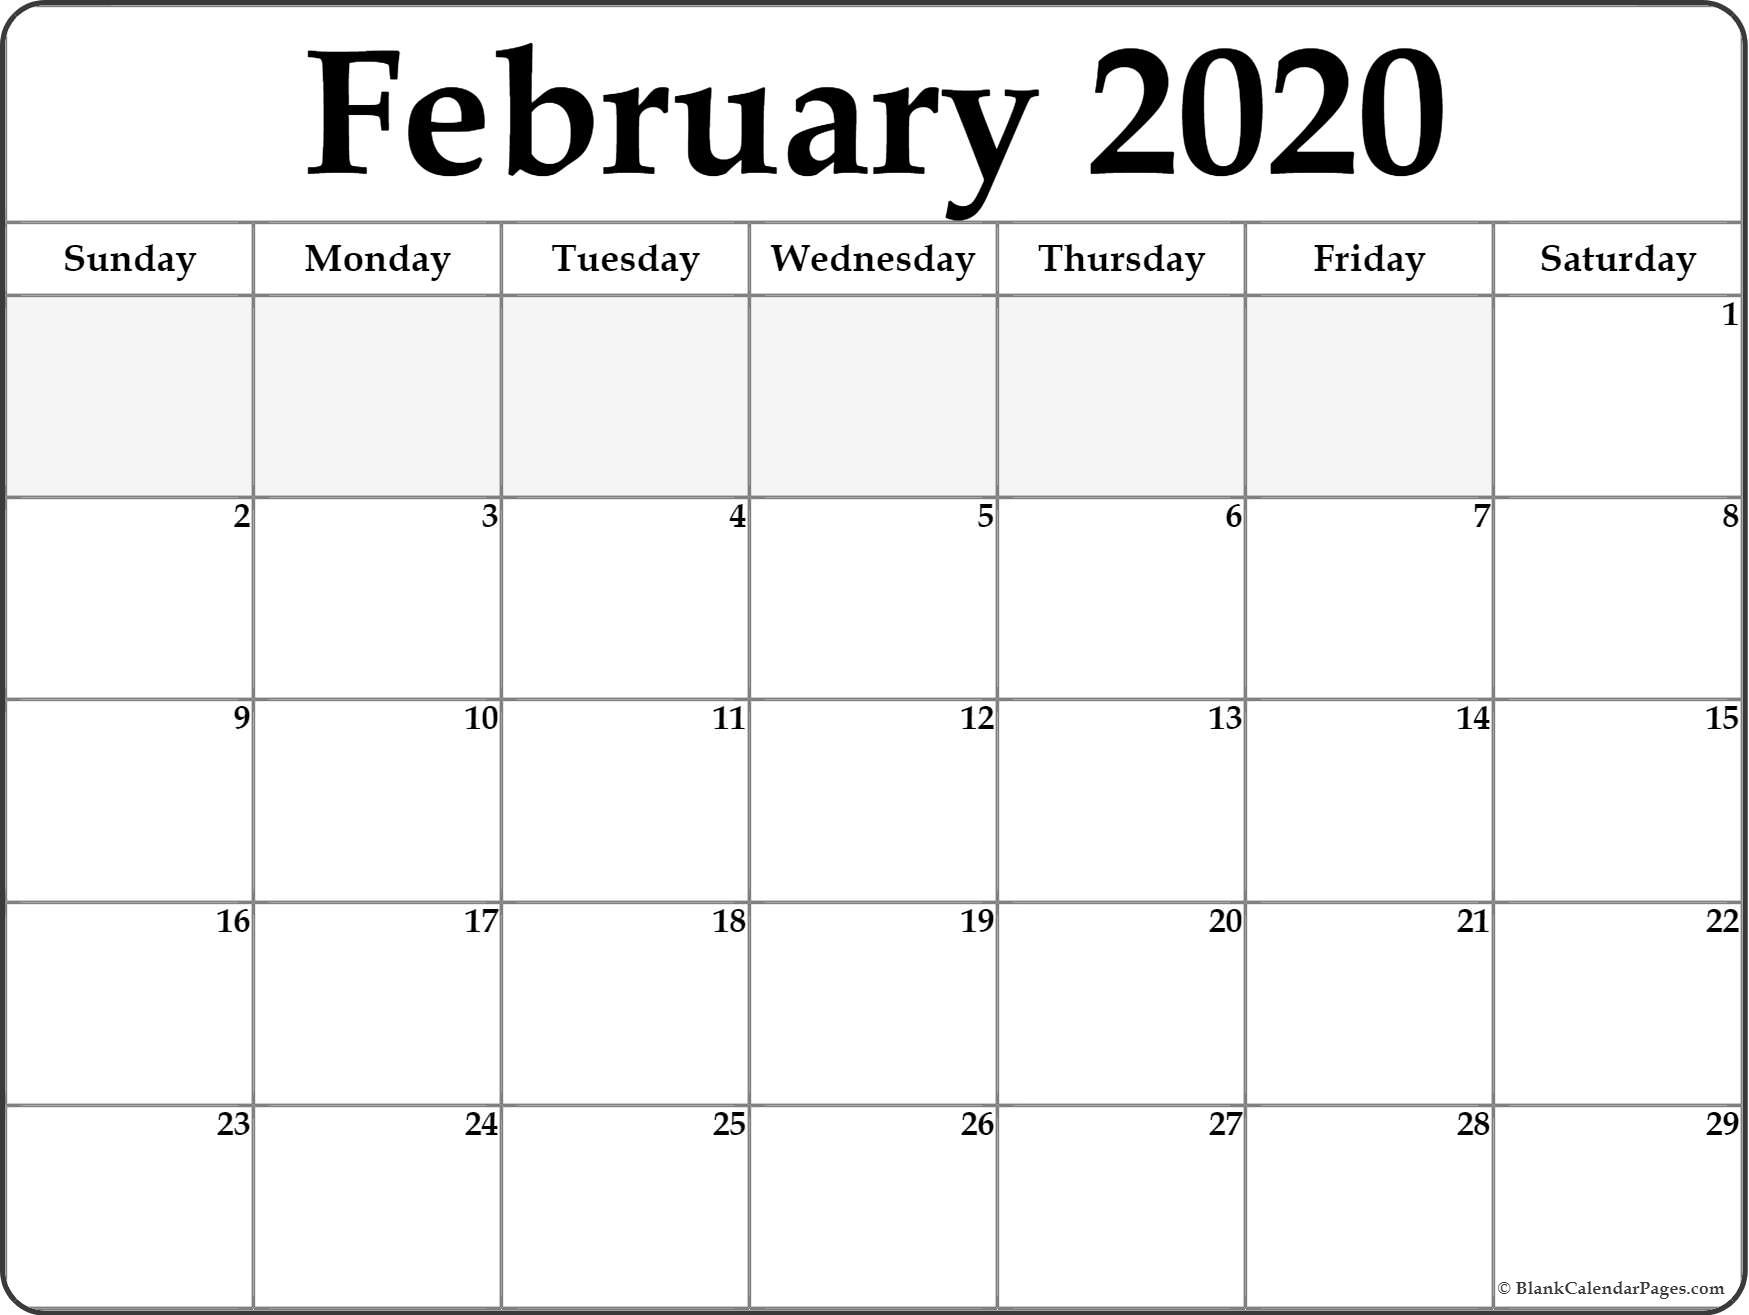 February 2020 Calendar | Free Printable Monthly Calendars-Summer Calendar Blank 2020